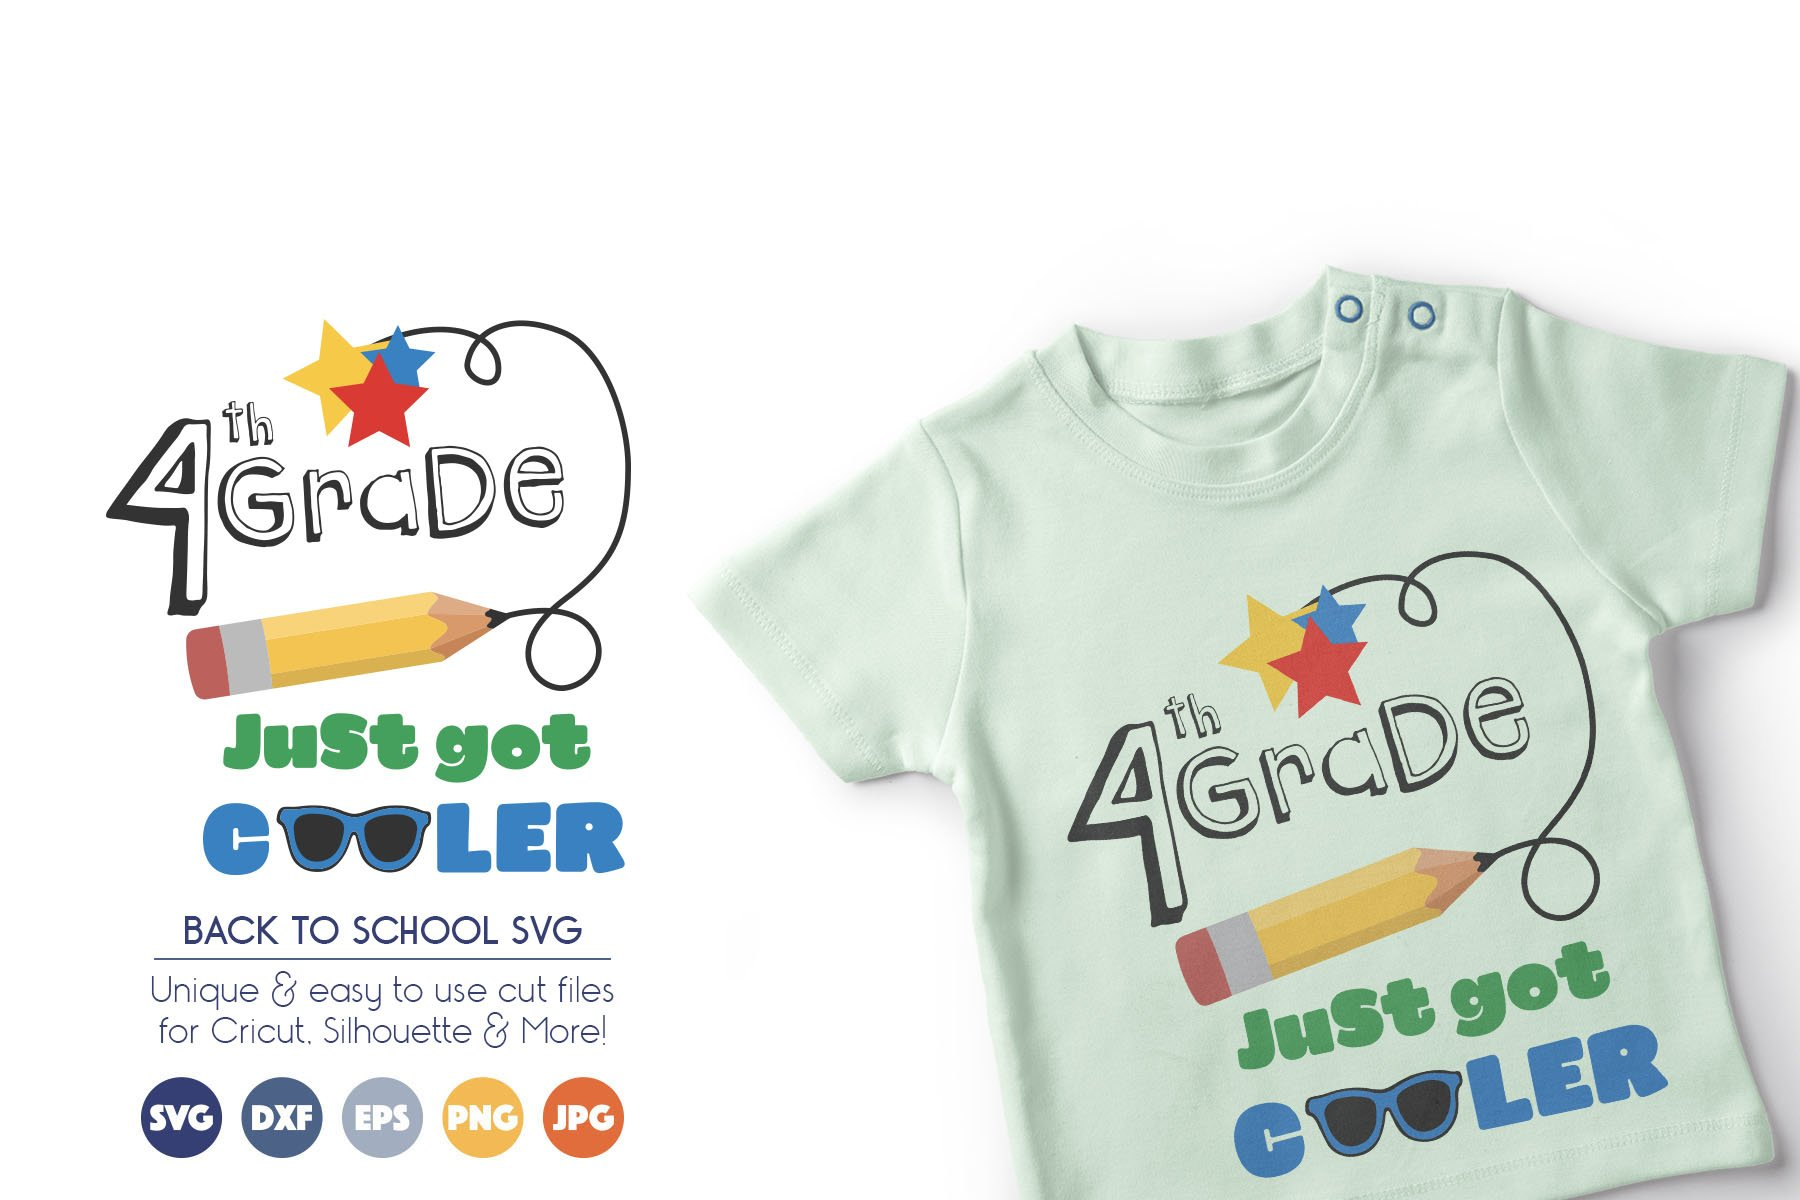 Back to School SVG Cut Files - 4th Grade Just Got Cooler example image 1